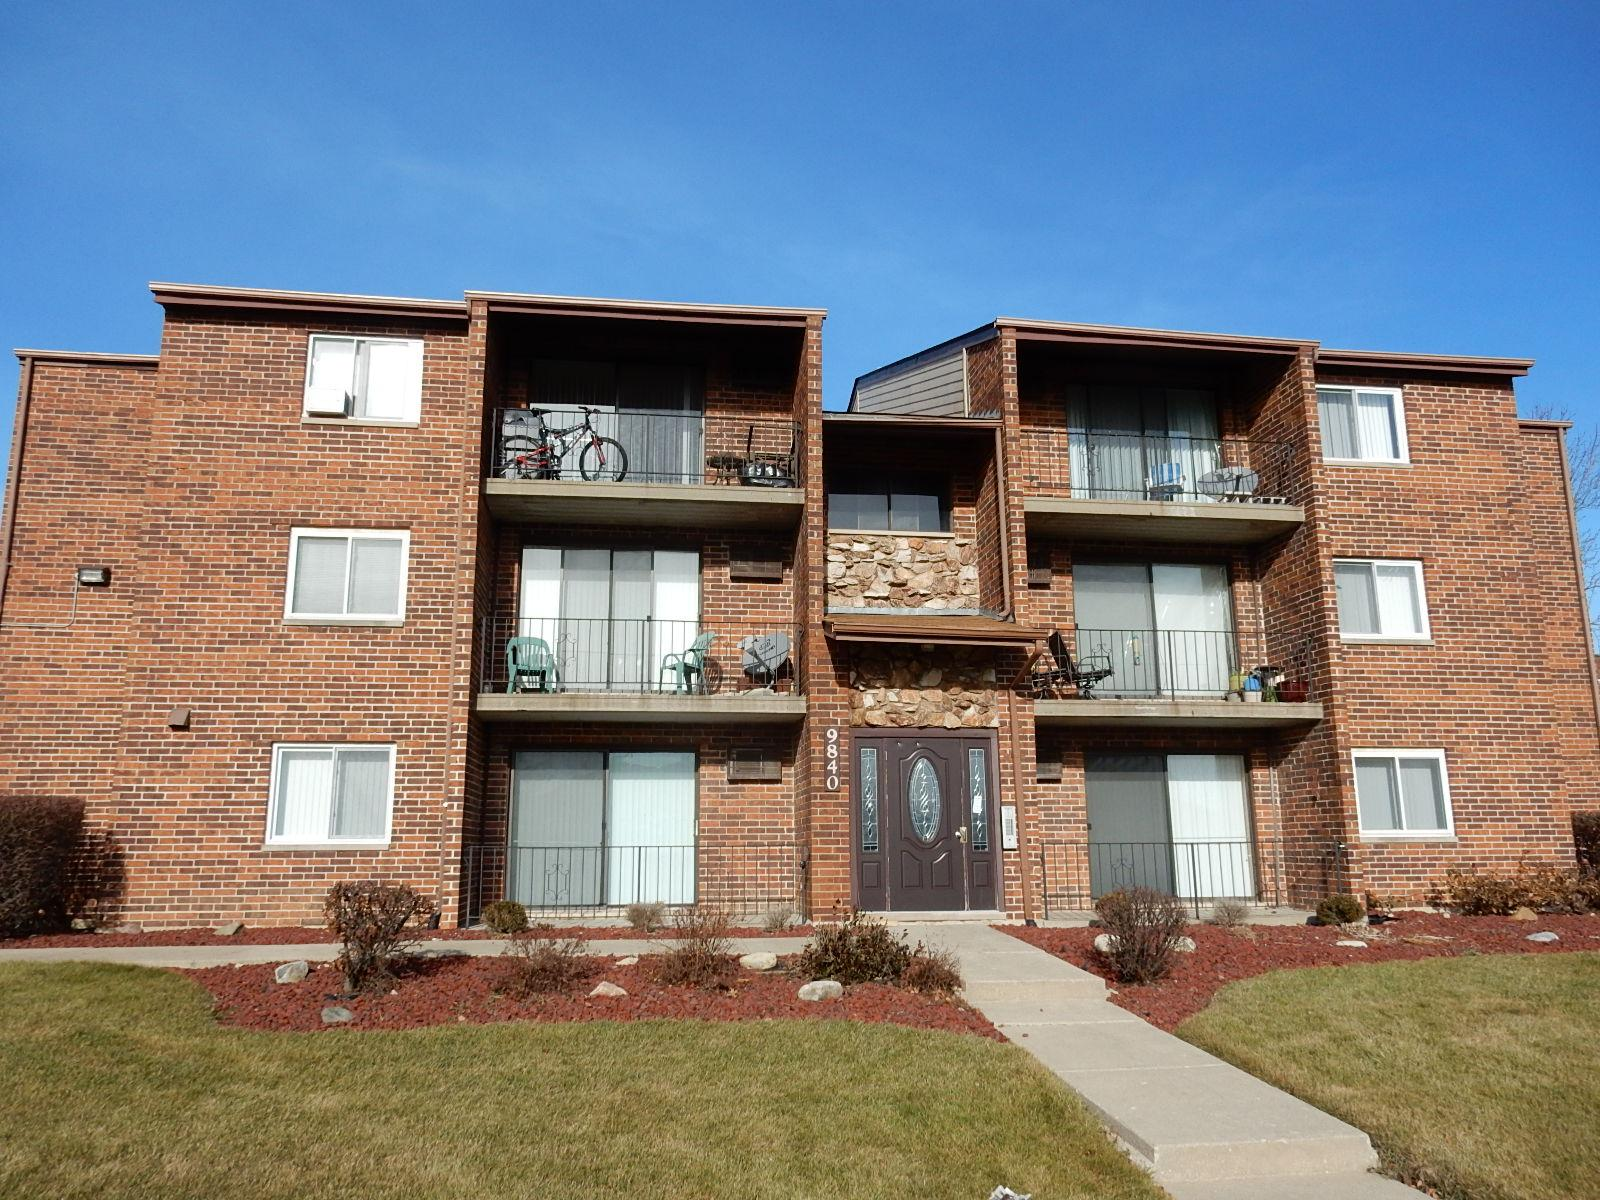 9840 W 153rd St # 1nw, Orland Park, IL 60462